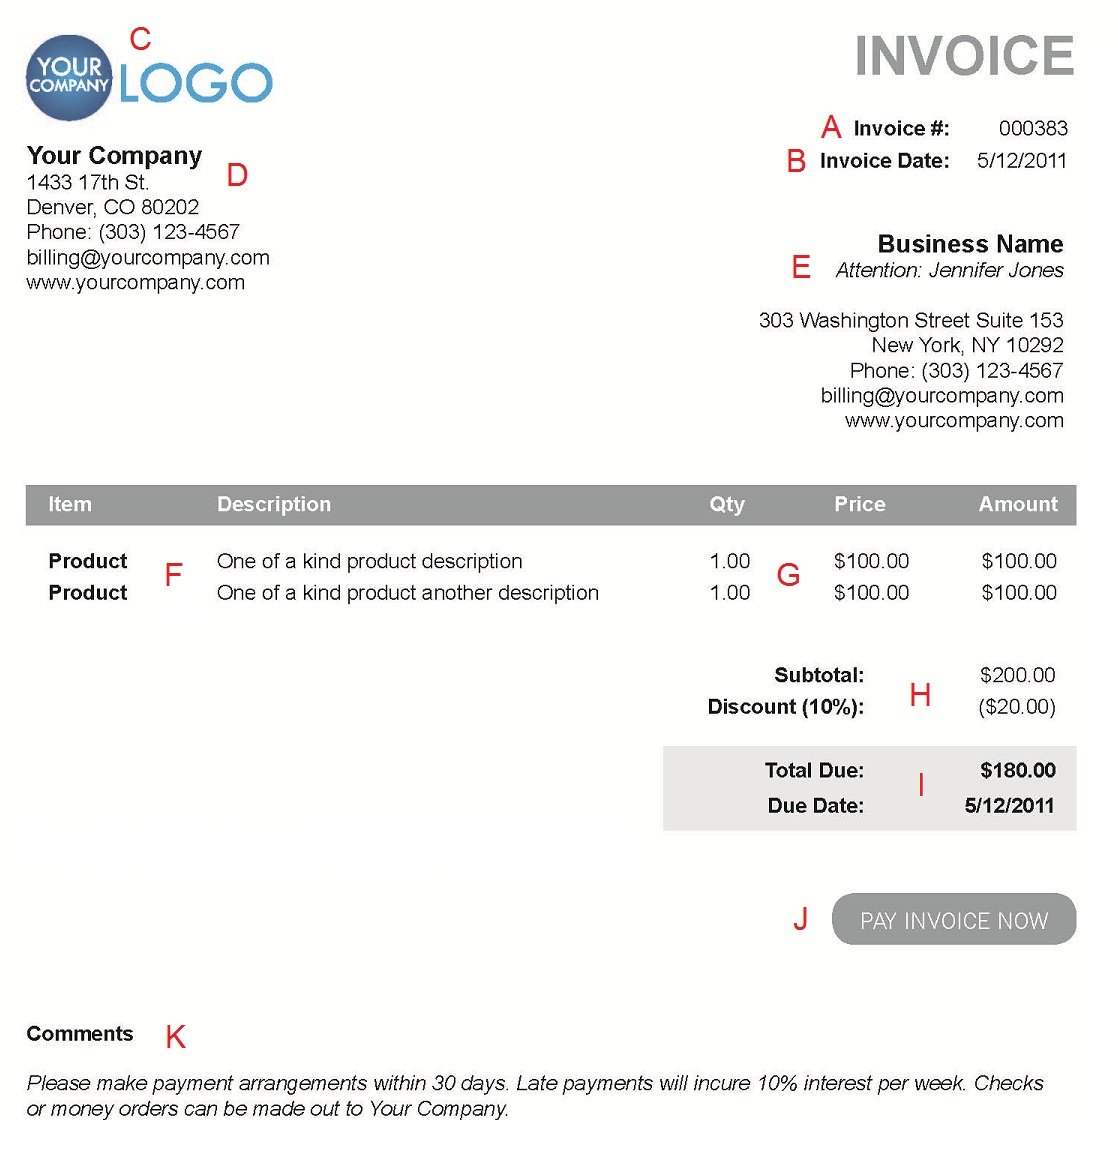 Centralasianshepherdus  Splendid The  Different Sections Of An Electronic Payment Invoice With Goodlooking A  With Extraordinary Free Printable Service Invoices Also Invoice Template Uk In Addition Invoice Template Example And Invoice Designer As Well As Invoice Template For Services Rendered Additionally Perforated Paper For Invoices From Paysimplecom With Centralasianshepherdus  Goodlooking The  Different Sections Of An Electronic Payment Invoice With Extraordinary A  And Splendid Free Printable Service Invoices Also Invoice Template Uk In Addition Invoice Template Example From Paysimplecom